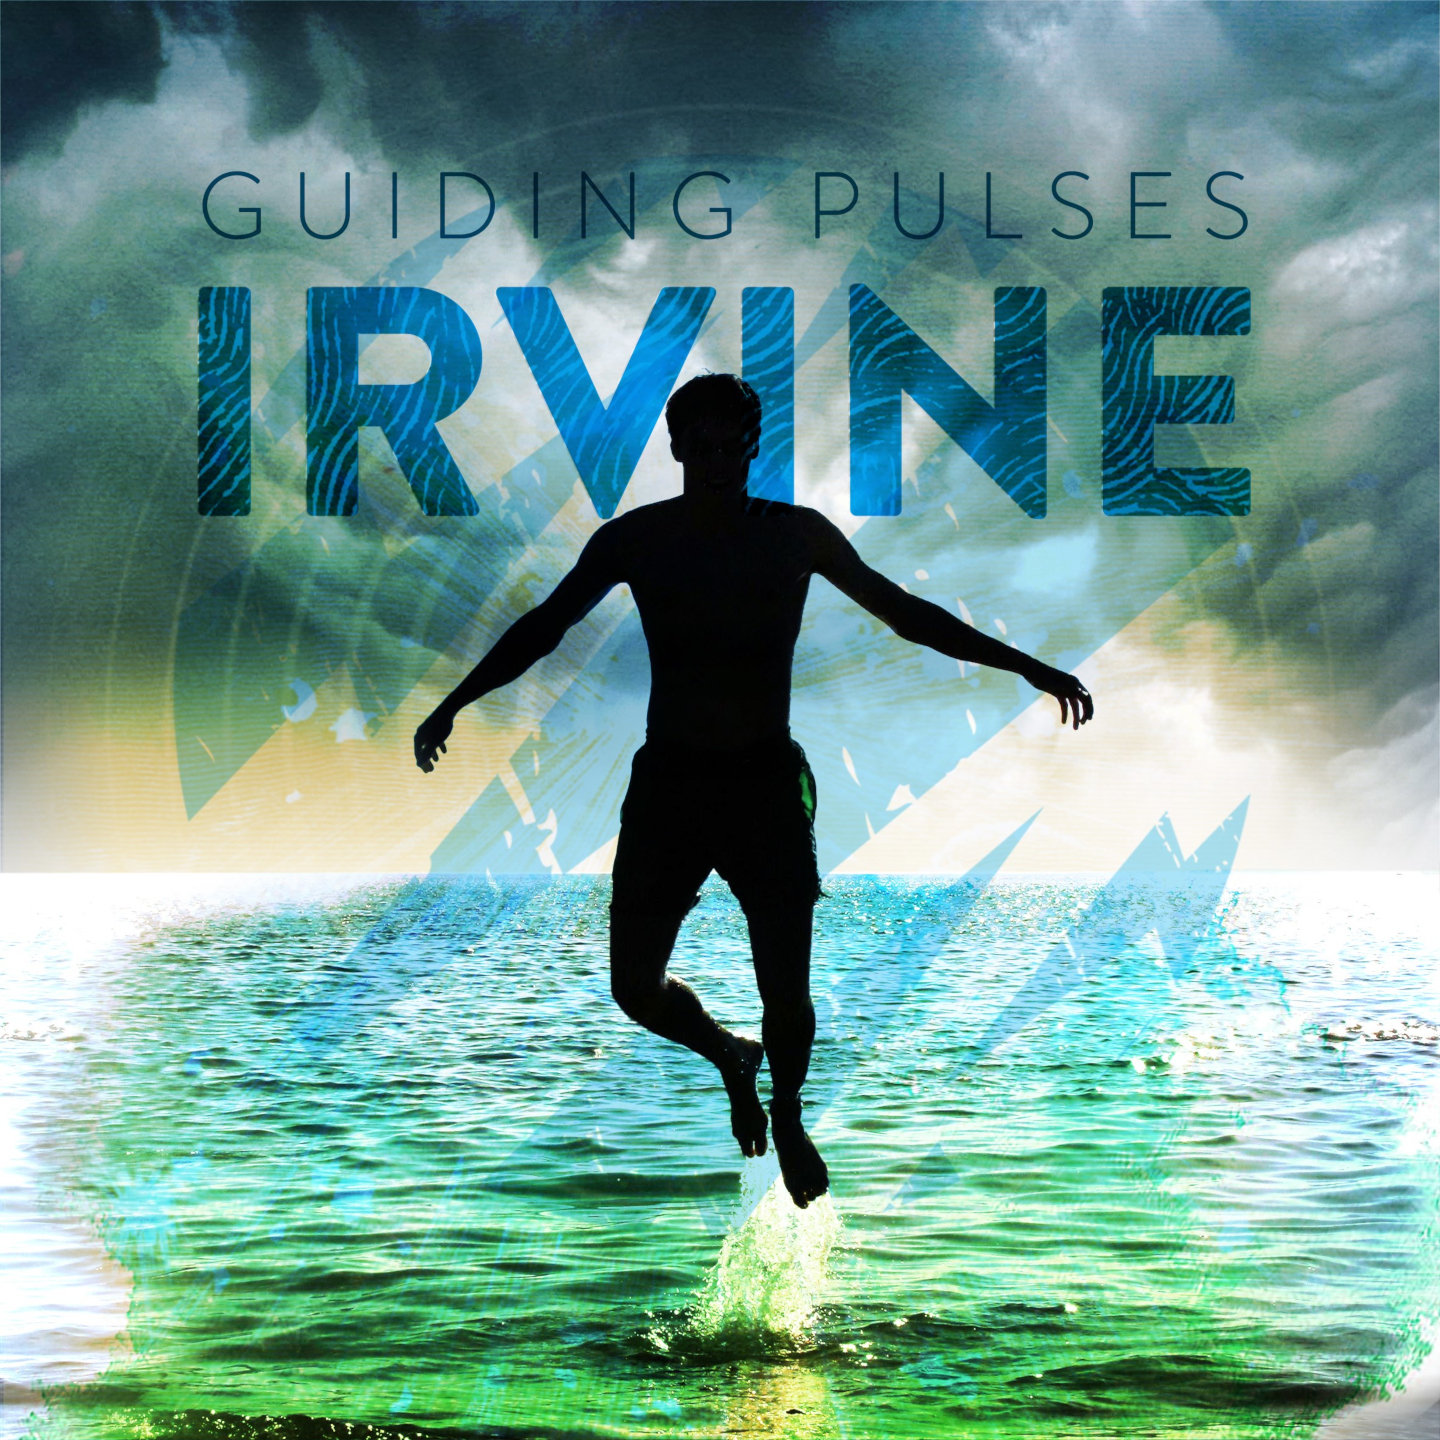 Irvine – Guiding Pulses